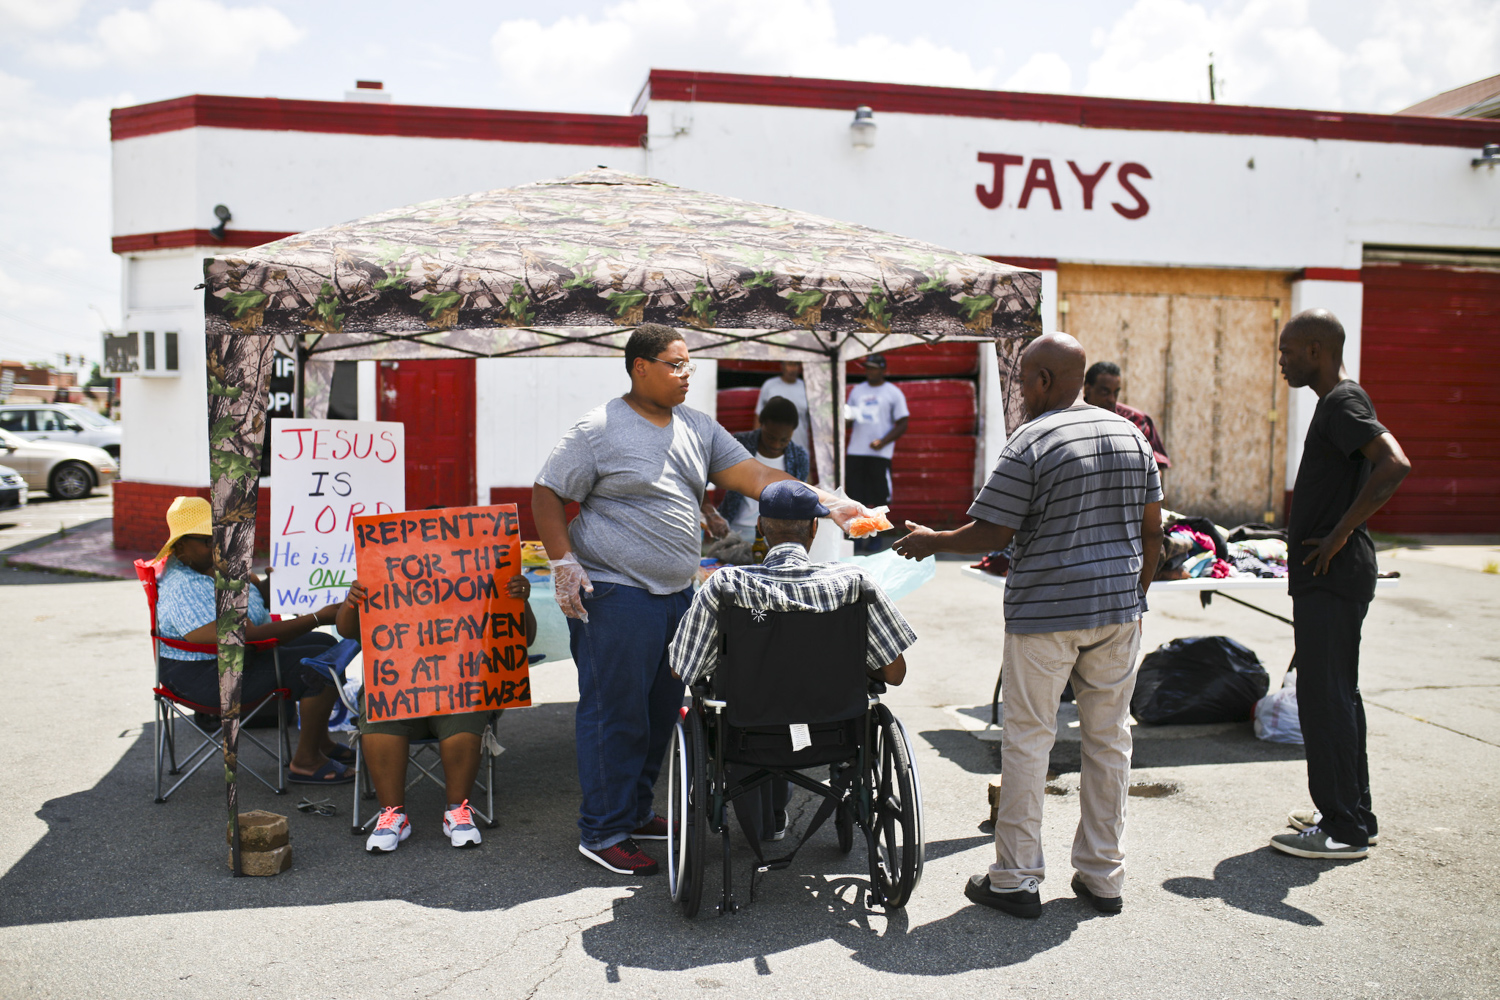 Phillip Bailey Jr., center, hands out a hot dog to people who walked by the House of Wisdom church's food and clothing giveaway stand on the corner of Wythe and Sycamore Streets on Saturday morning. [Scott P. Yates/progress-index.com]